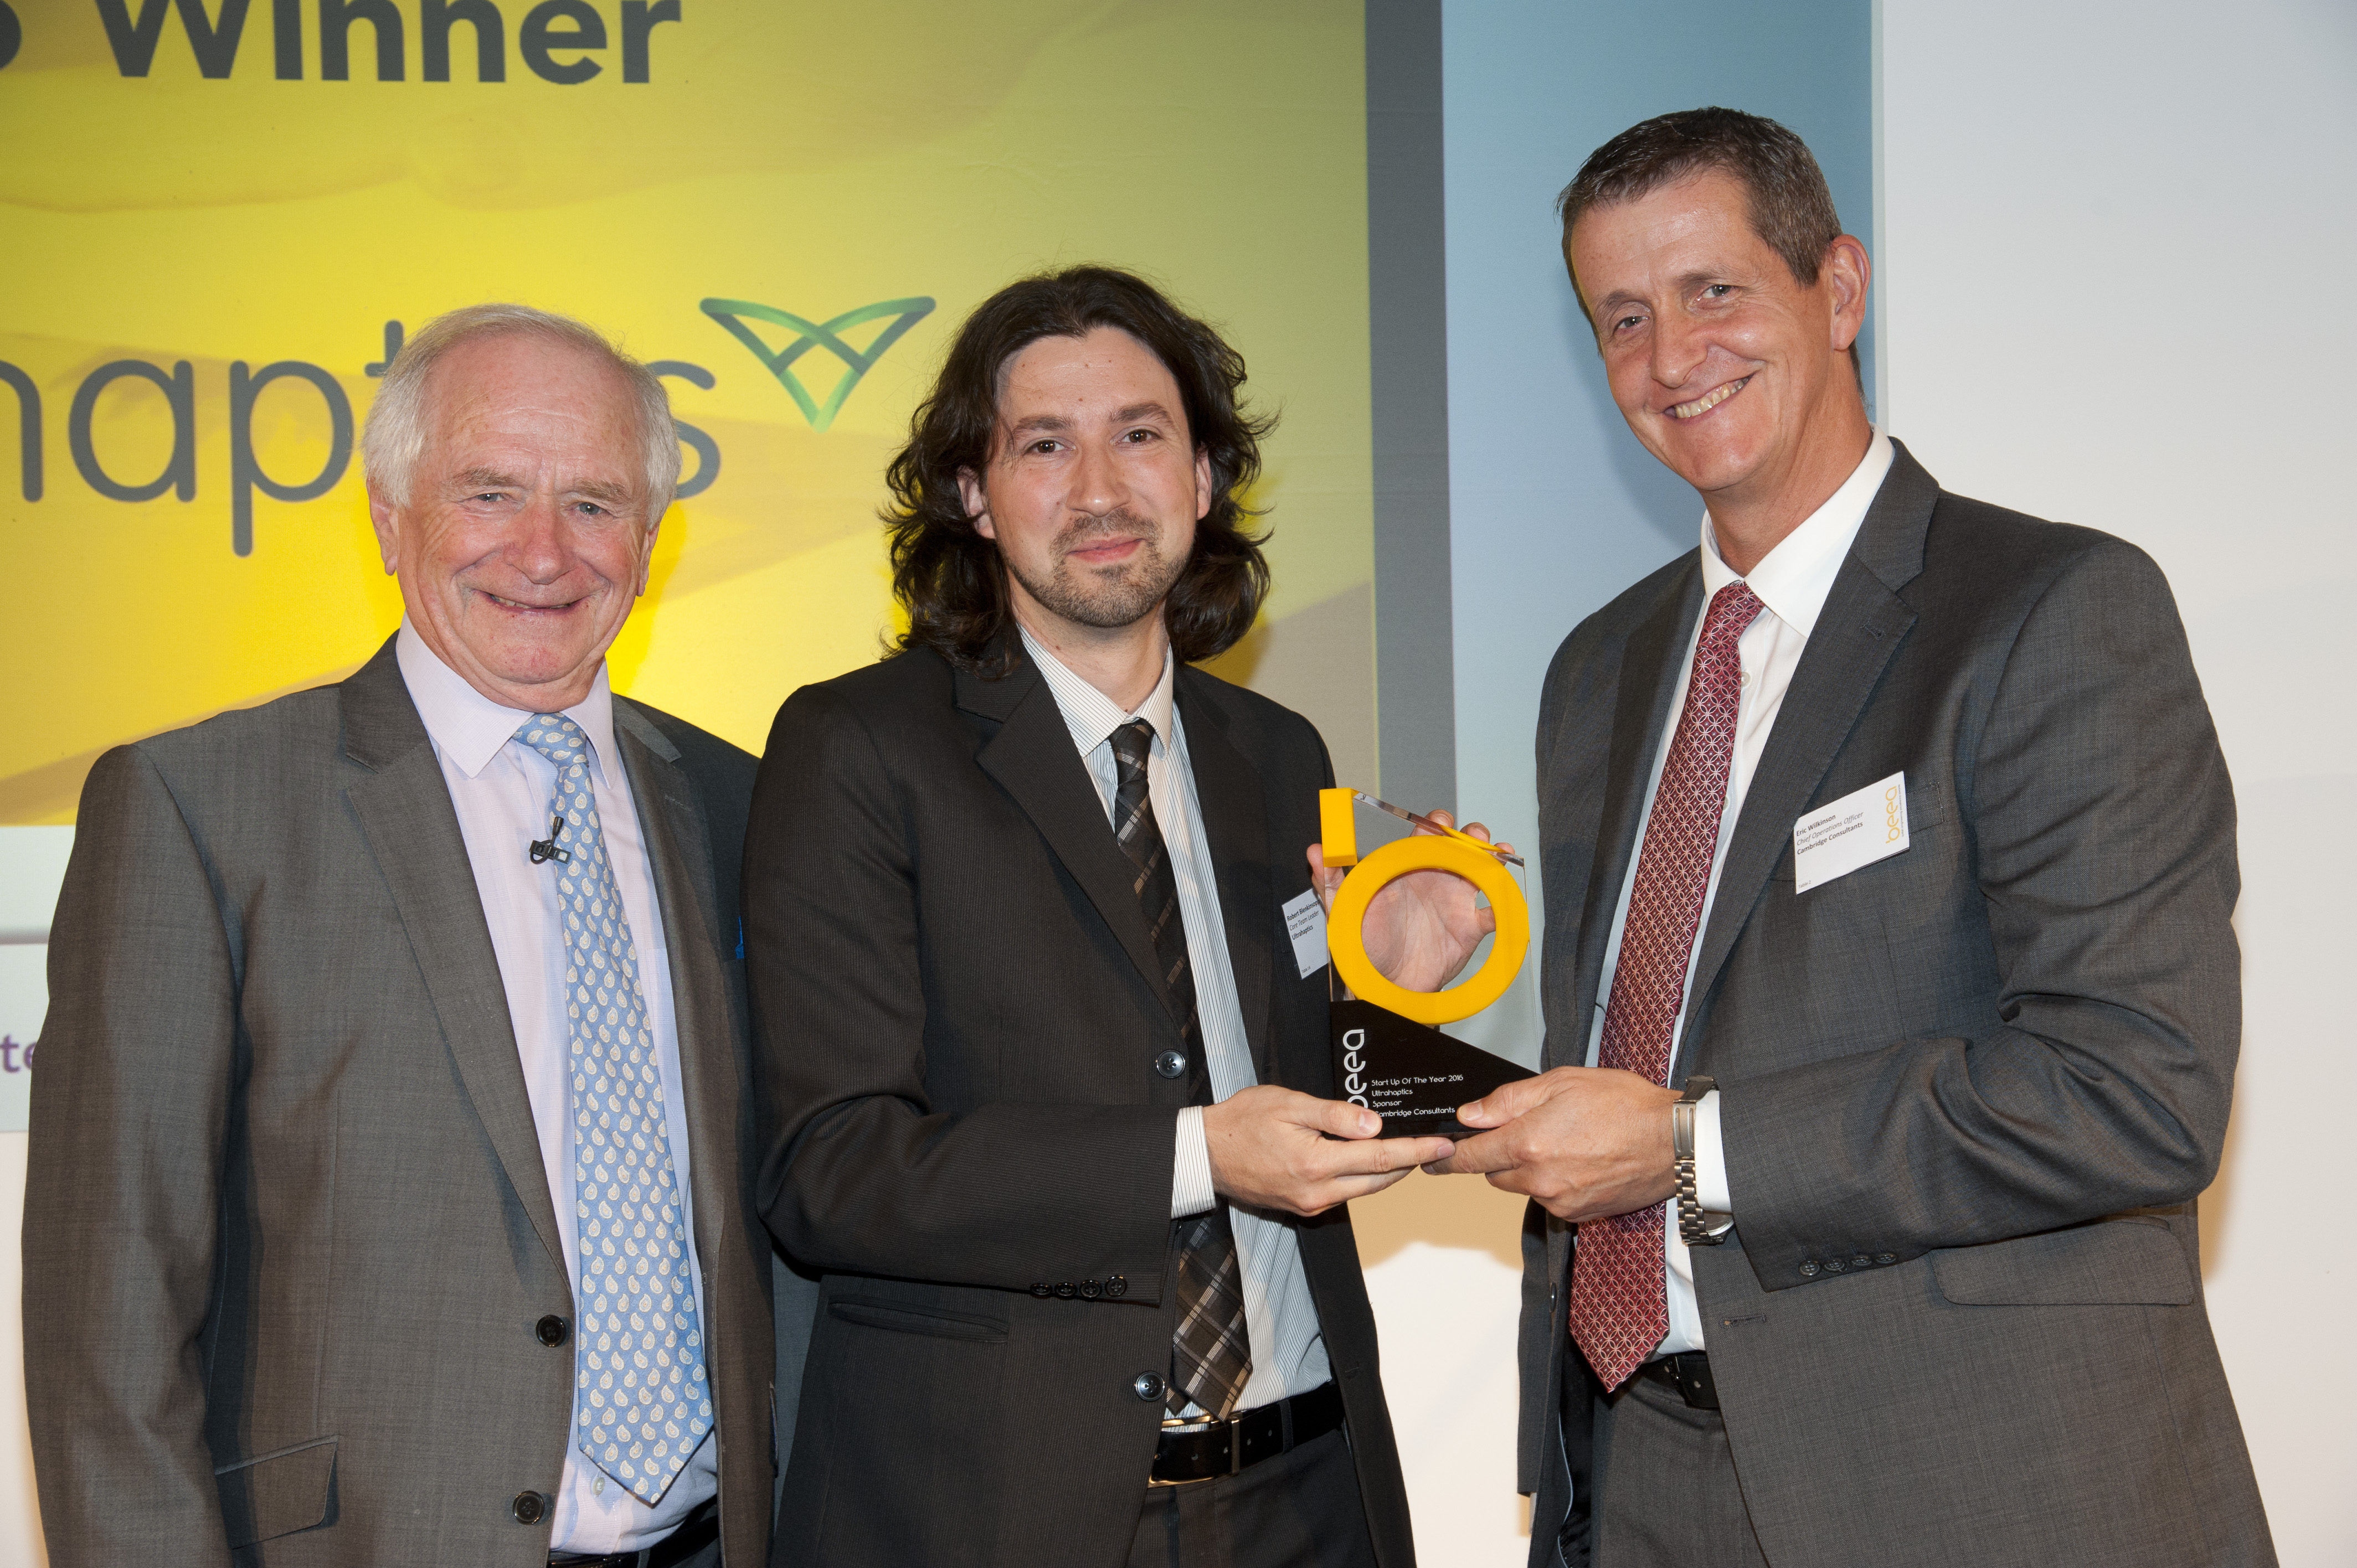 Left to Right: Johnny Ball- Award host, Robert Blenkinsopp - Ultrahaptics, Eric Wilkinson, COO, Cambridge Consultants and Chairman of the Judging panel.